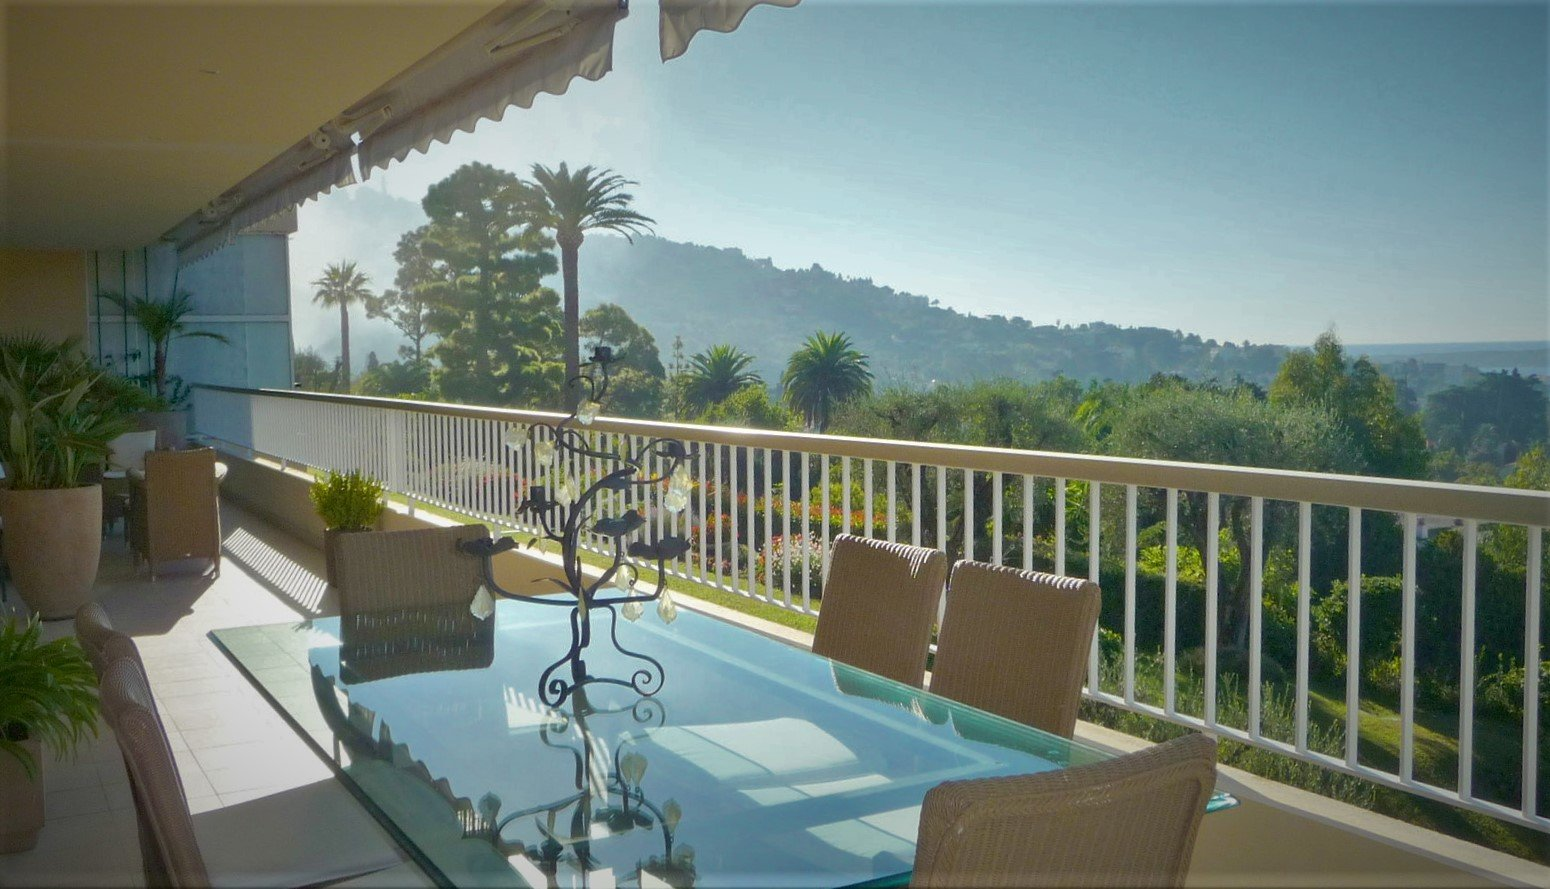 TO SALE 6P 200M² + 80M² TERRACE PANORAMIC SEA VIEW